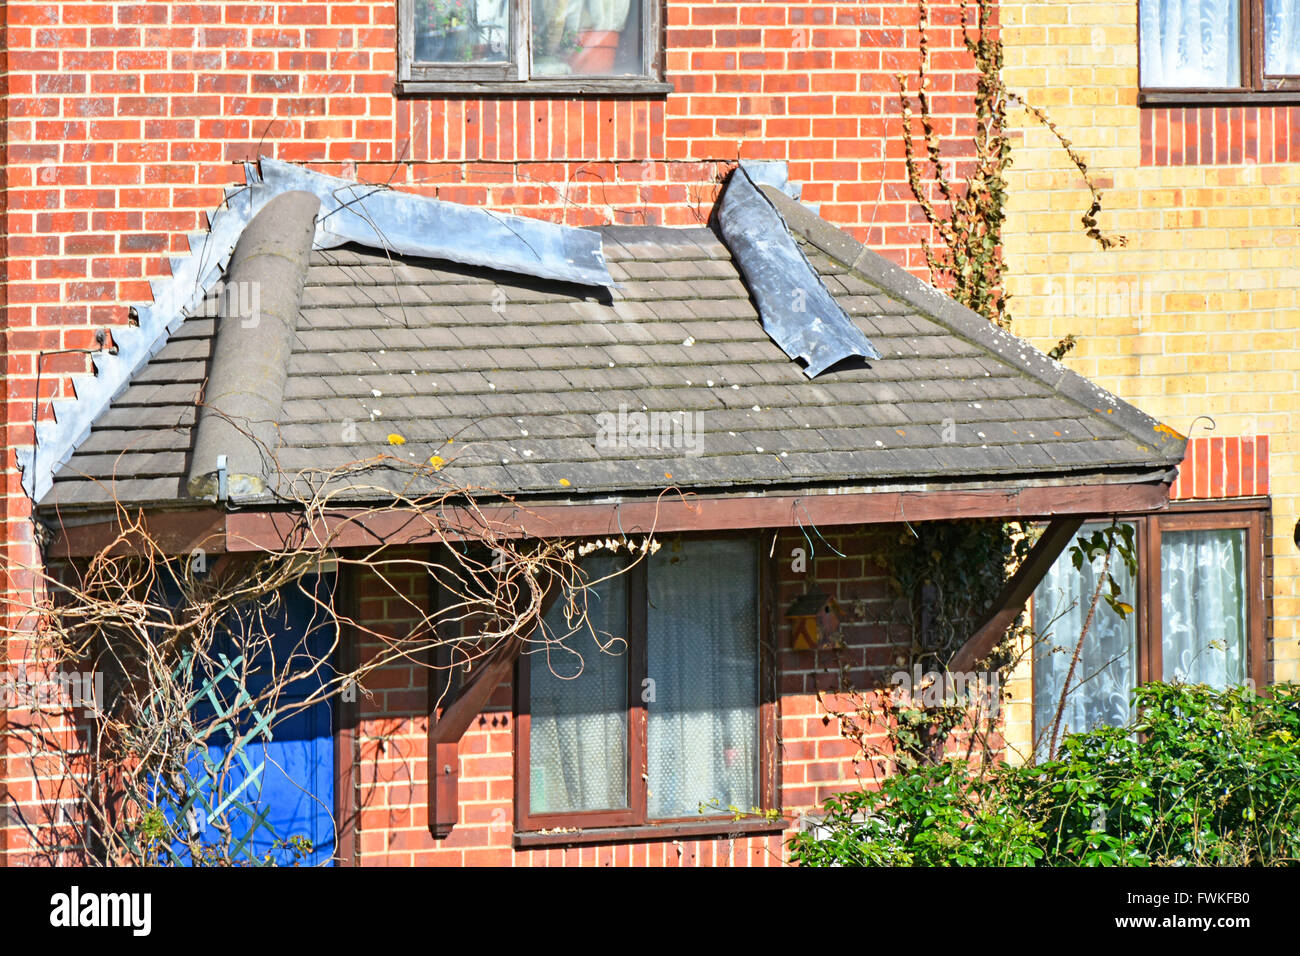 Defective Lead Flashing At Abutment Of Sloping House Porch